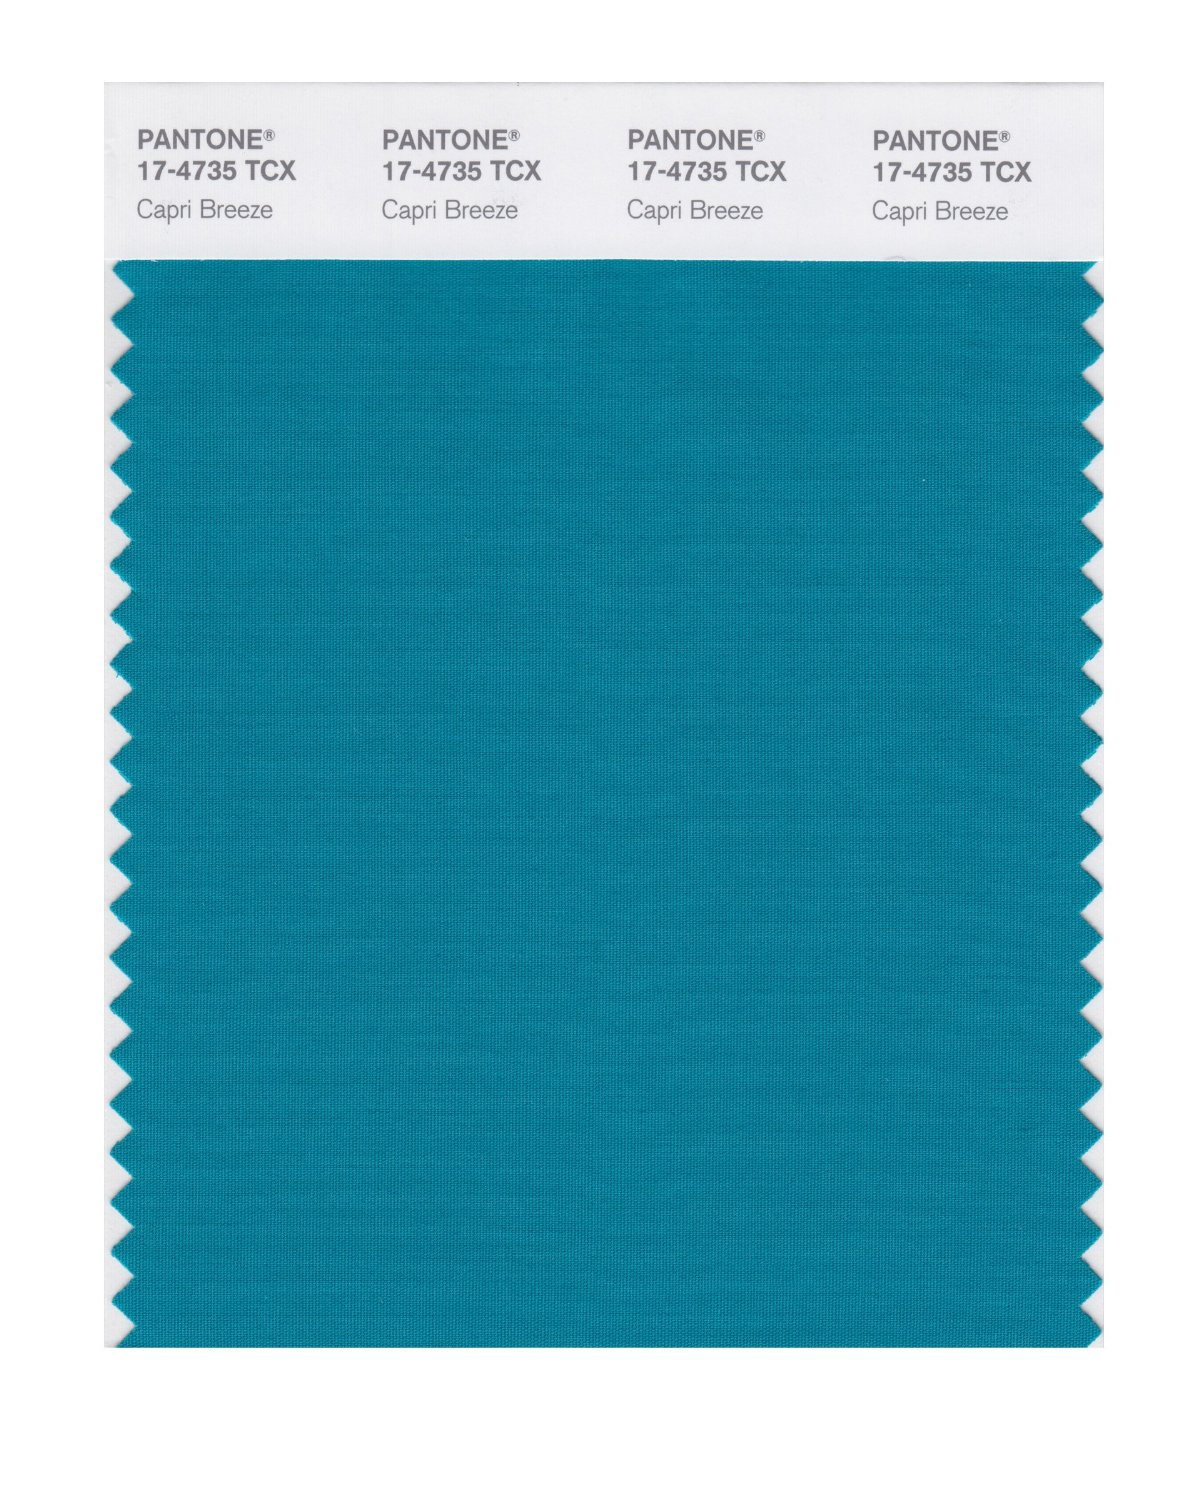 Pantone Smart Swatch 17-4735 Capri Breeze